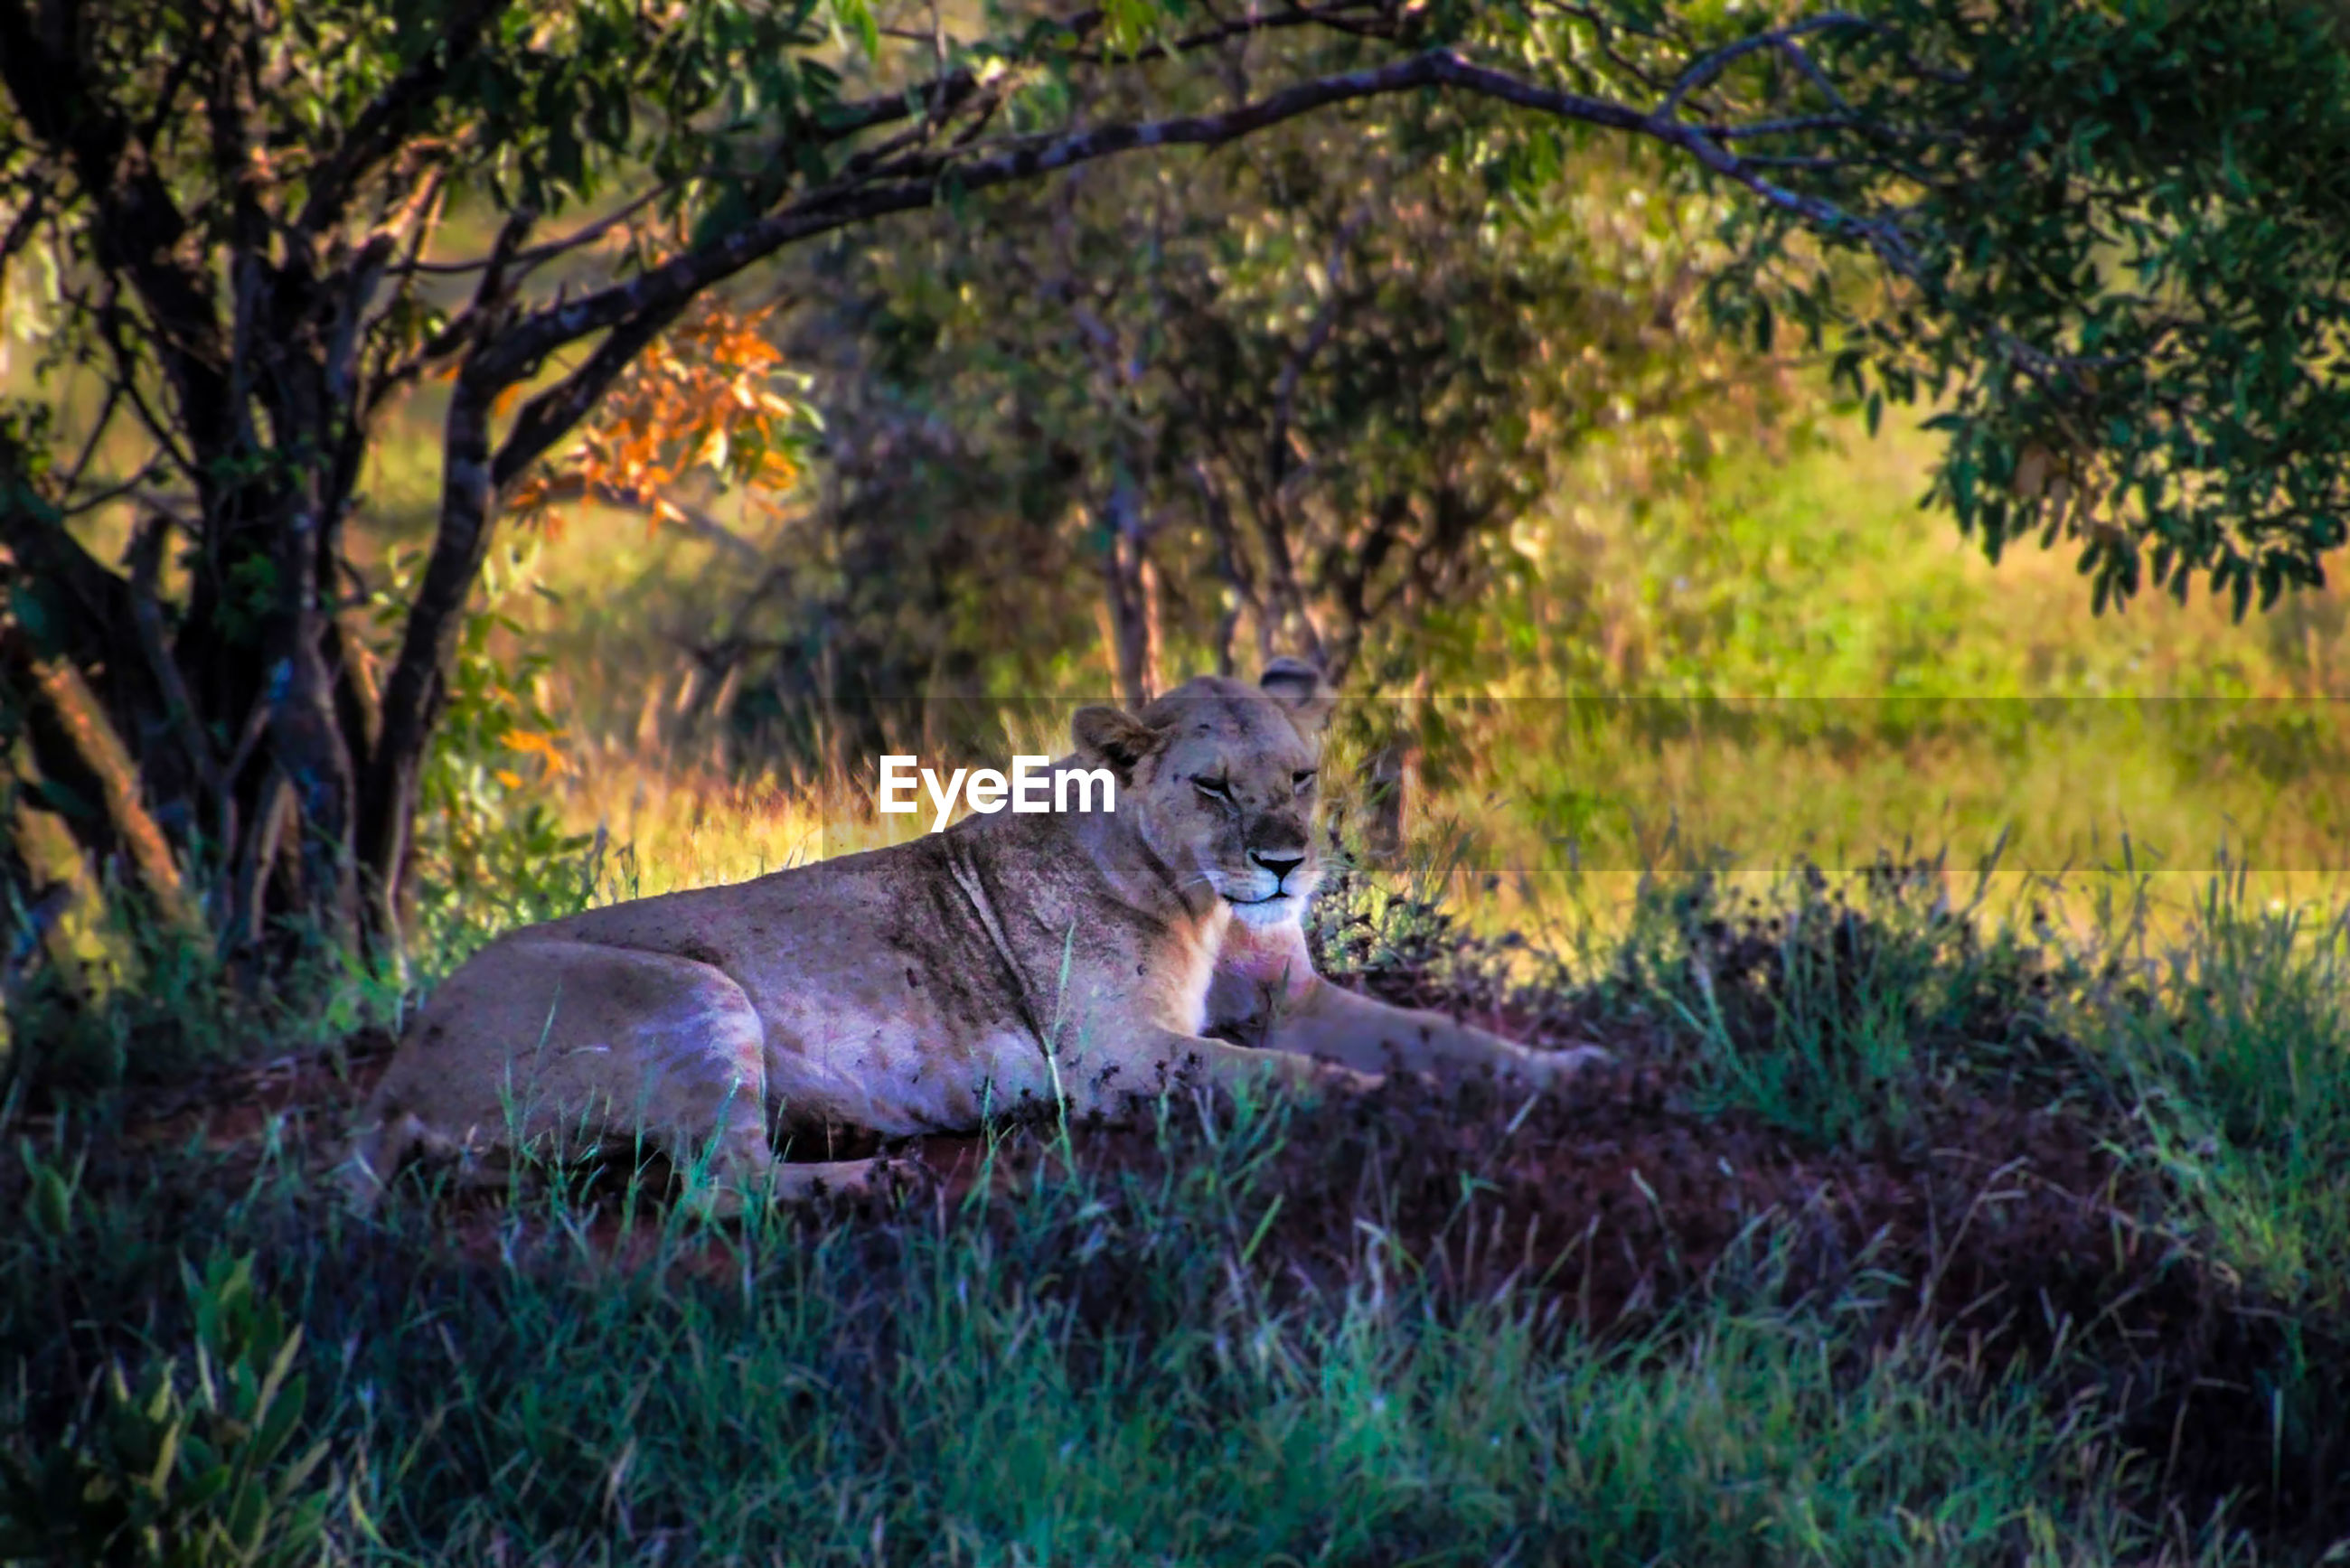 Lioness sitting on field in forest